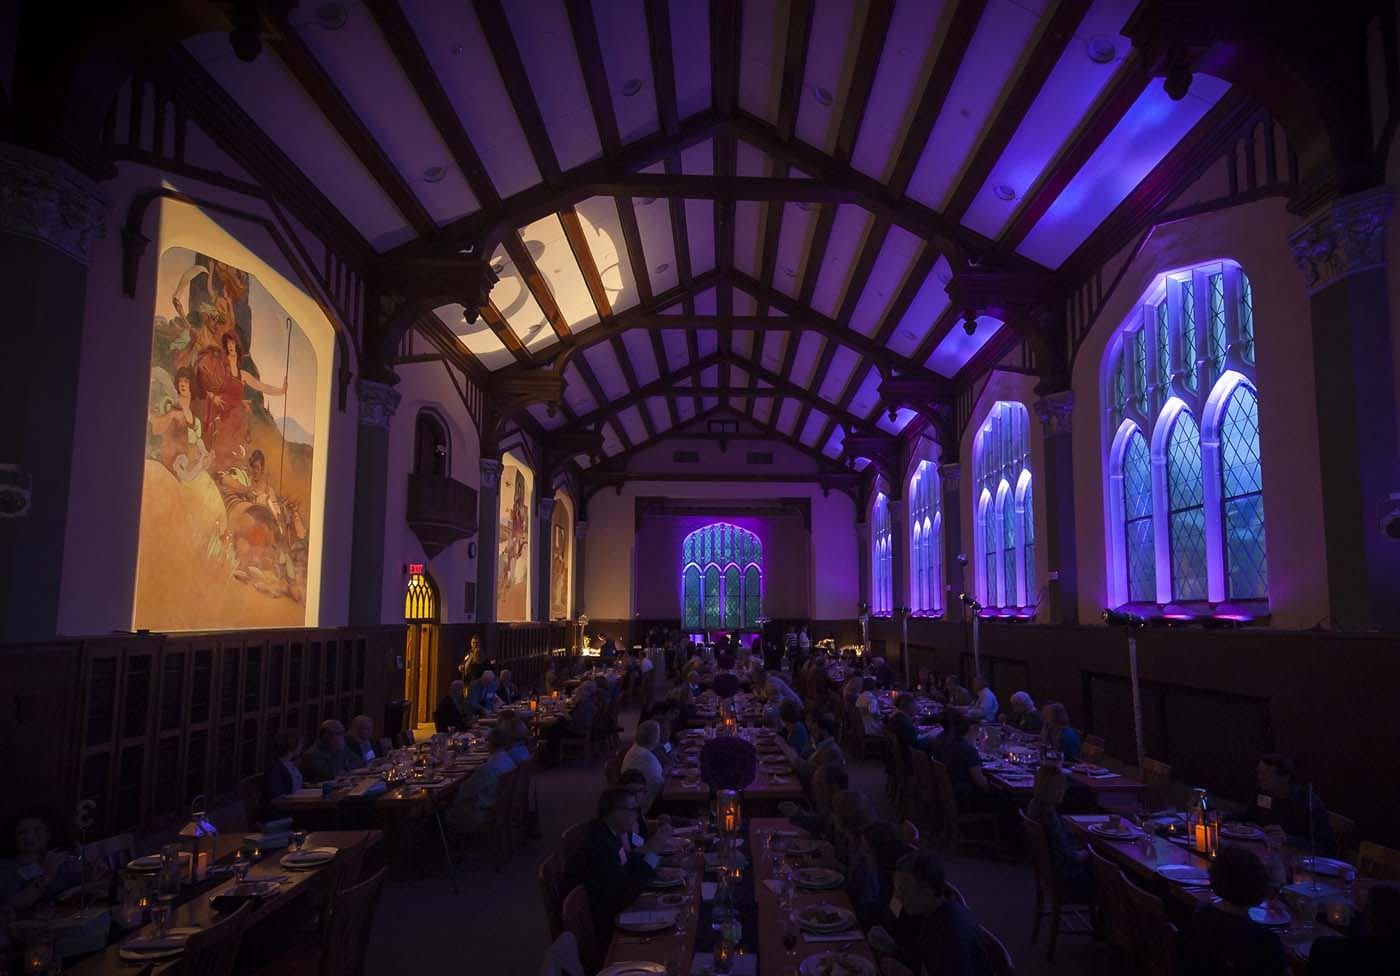 The Great Room is filled with tables of gala guests and washed in purple lights. Spotlights highlight the art deco murals along one wall.